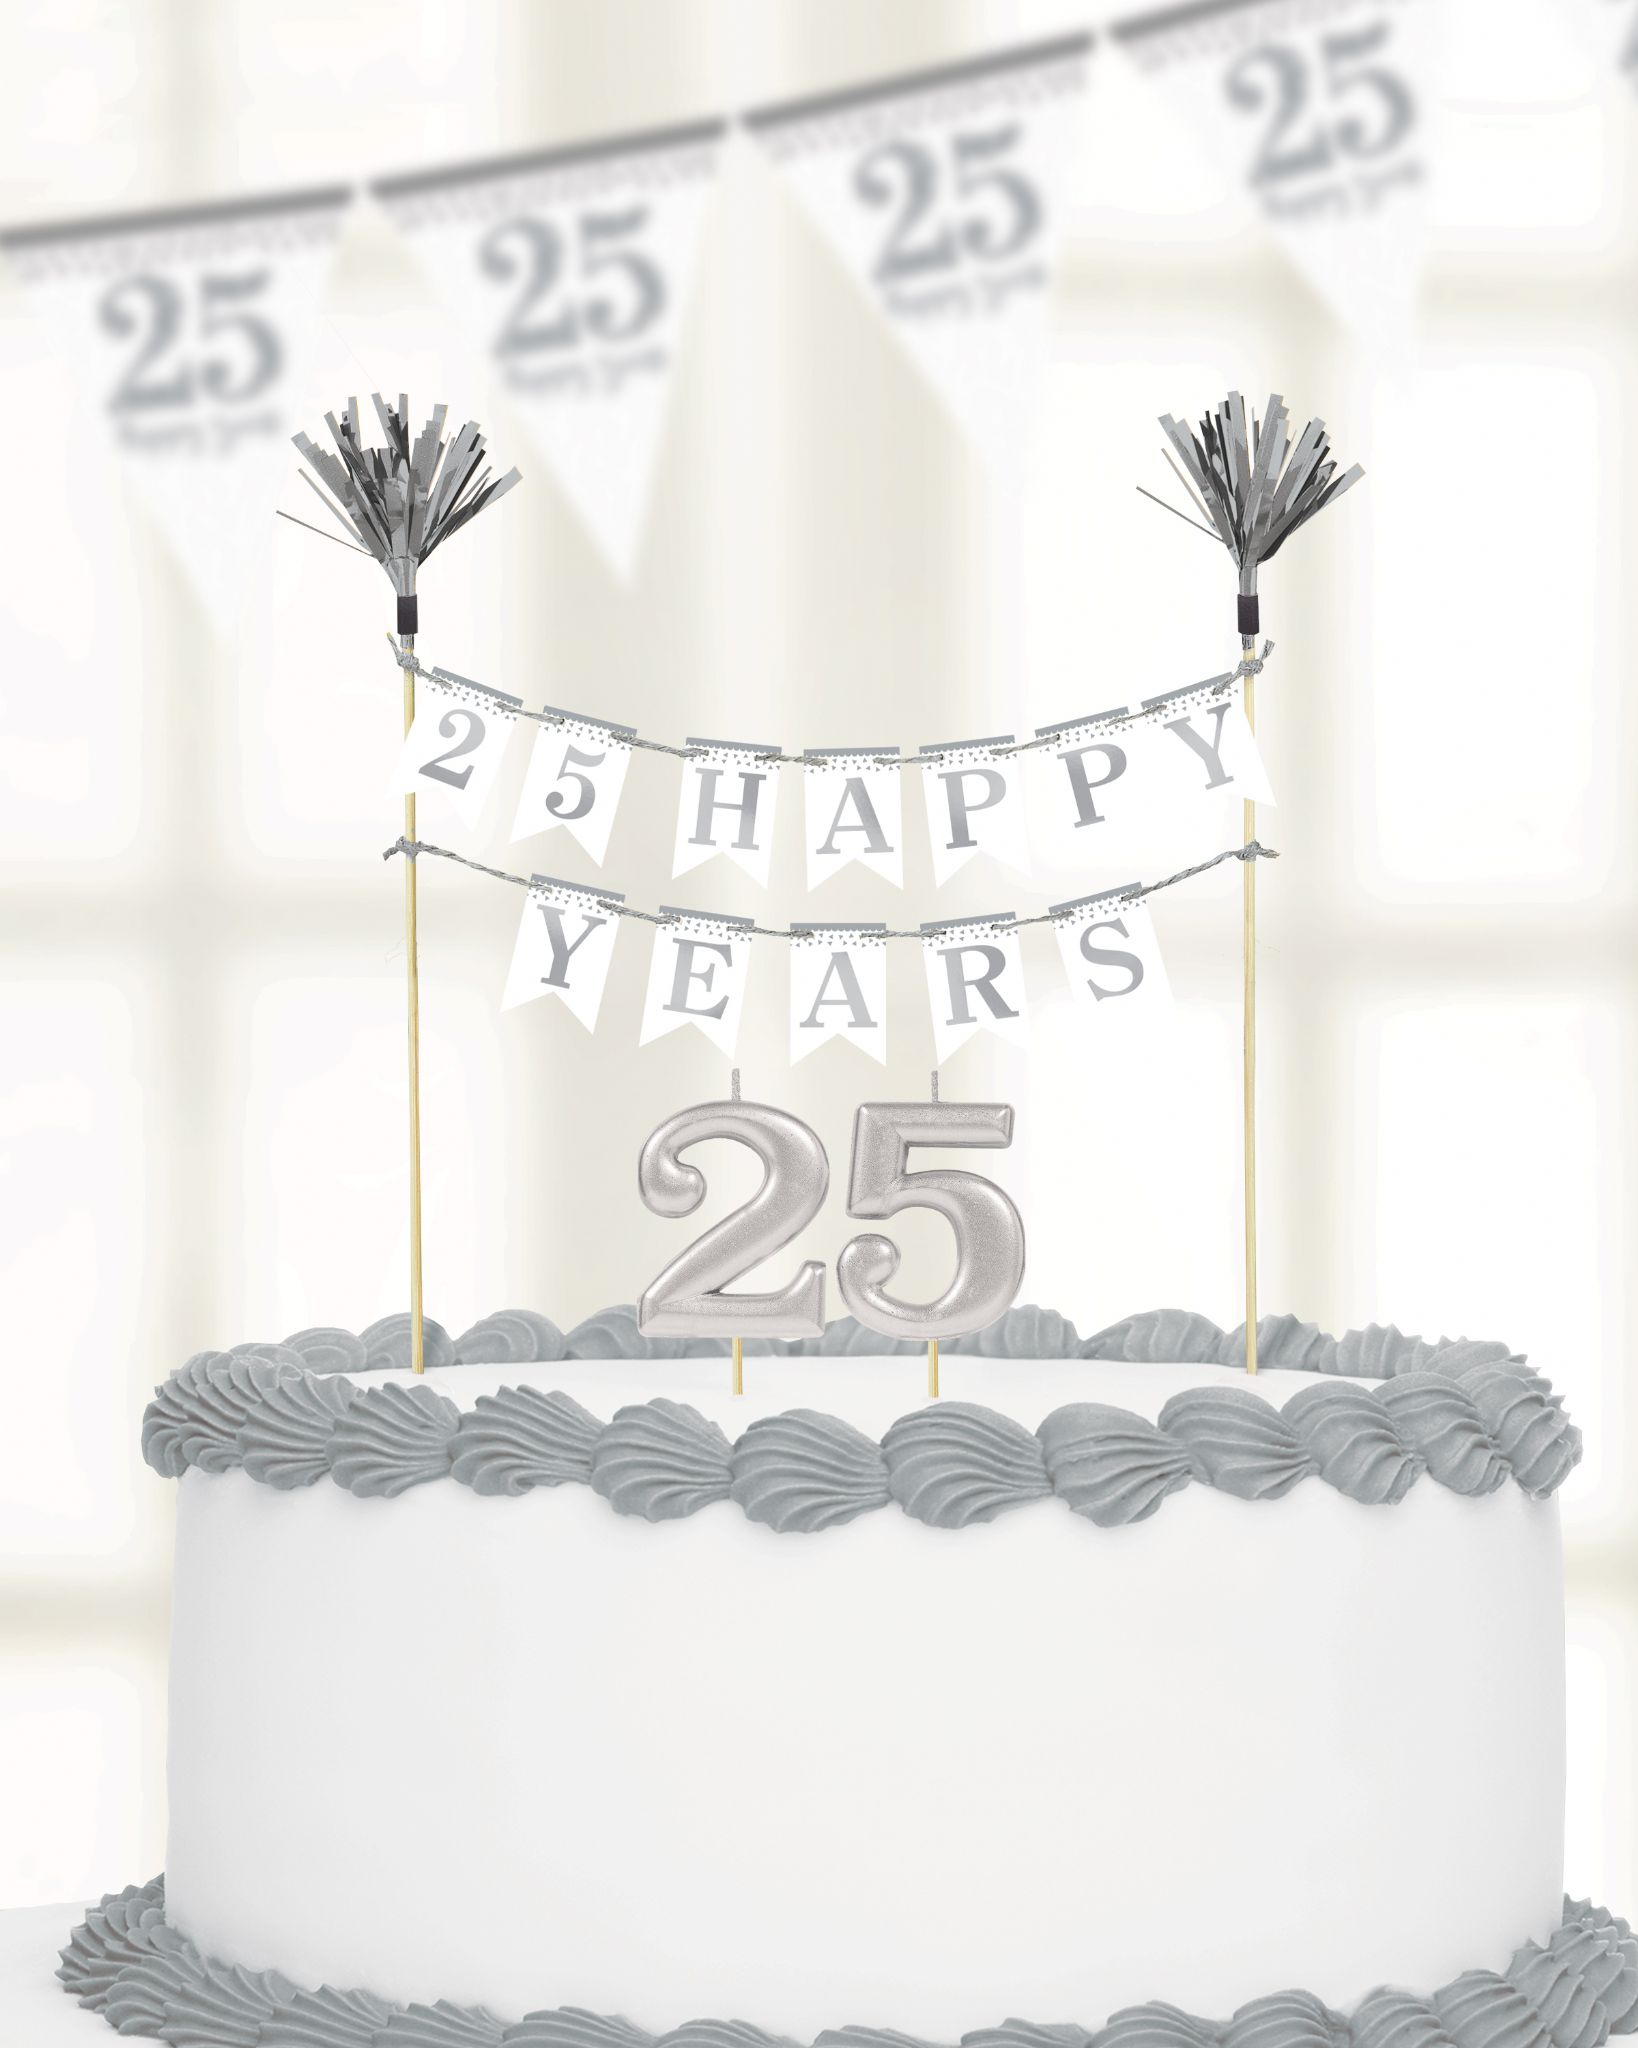 Pleasing Sparkling Silver Anniversary Cake Decoration Candles Funny Birthday Cards Online Aboleapandamsfinfo